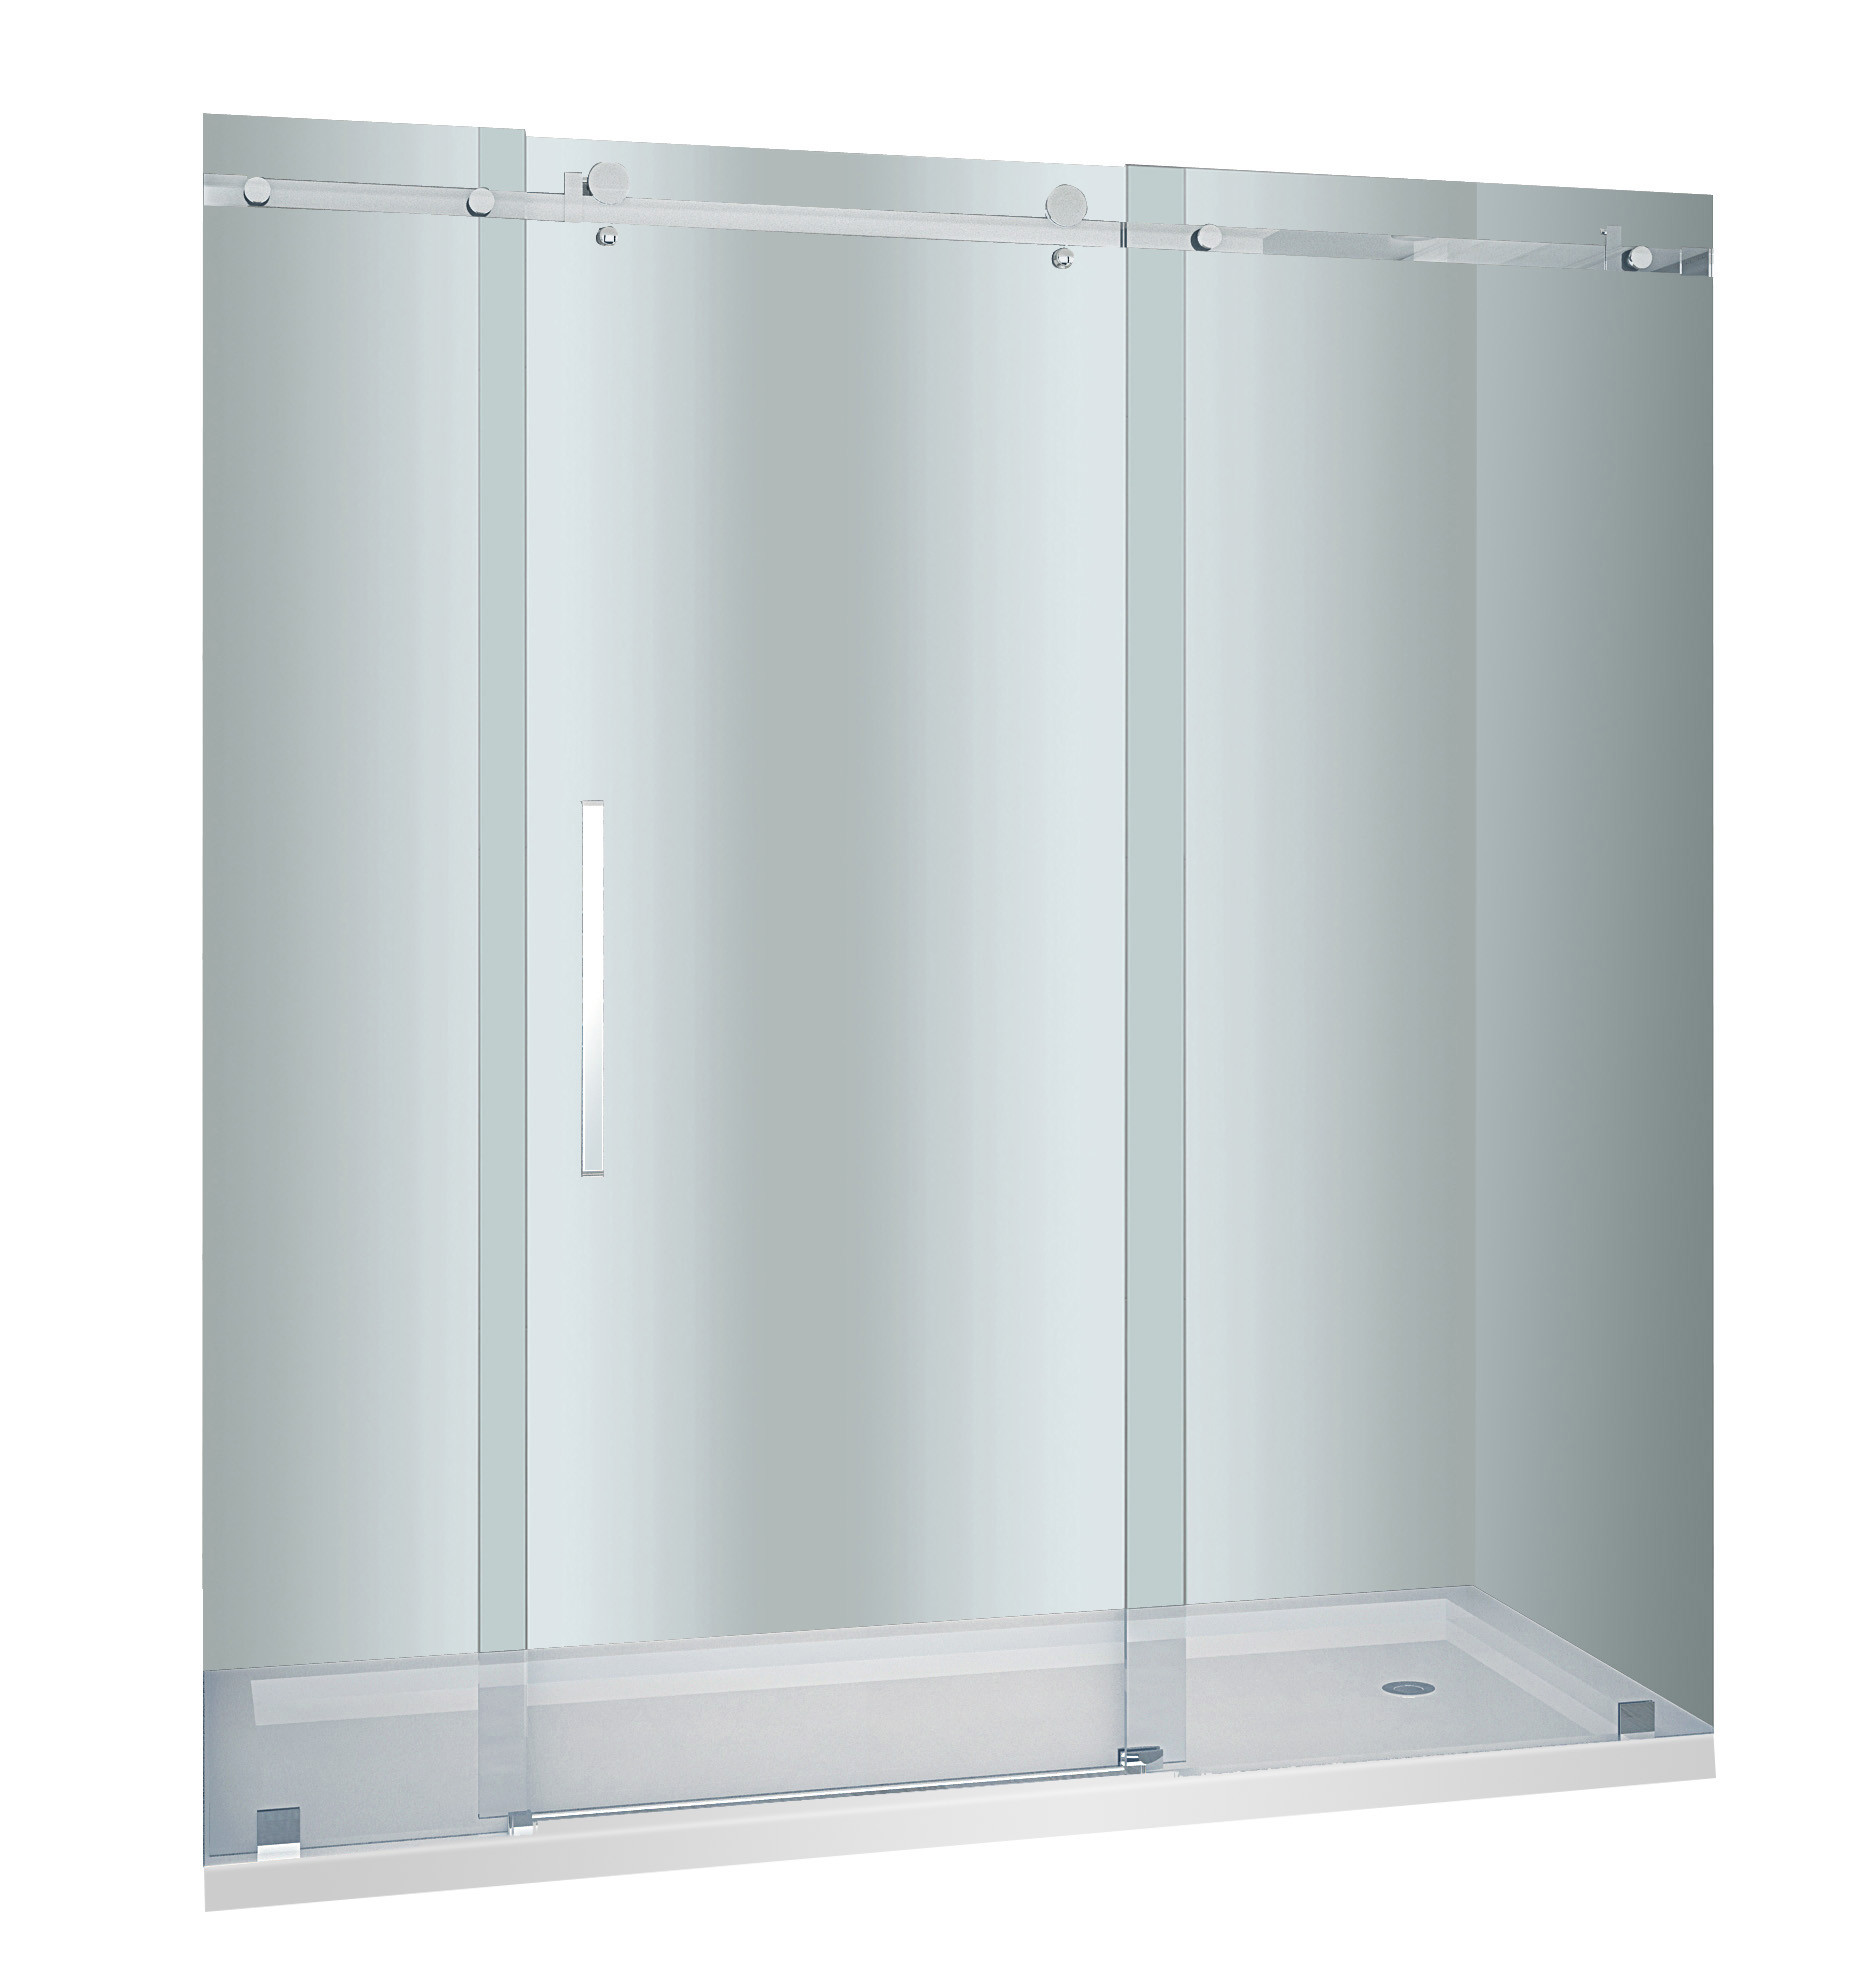 Aston Global SDR976F-TR-SS-72-10-L Frosted Shower Door With Shower Left Base In Stainless Steel